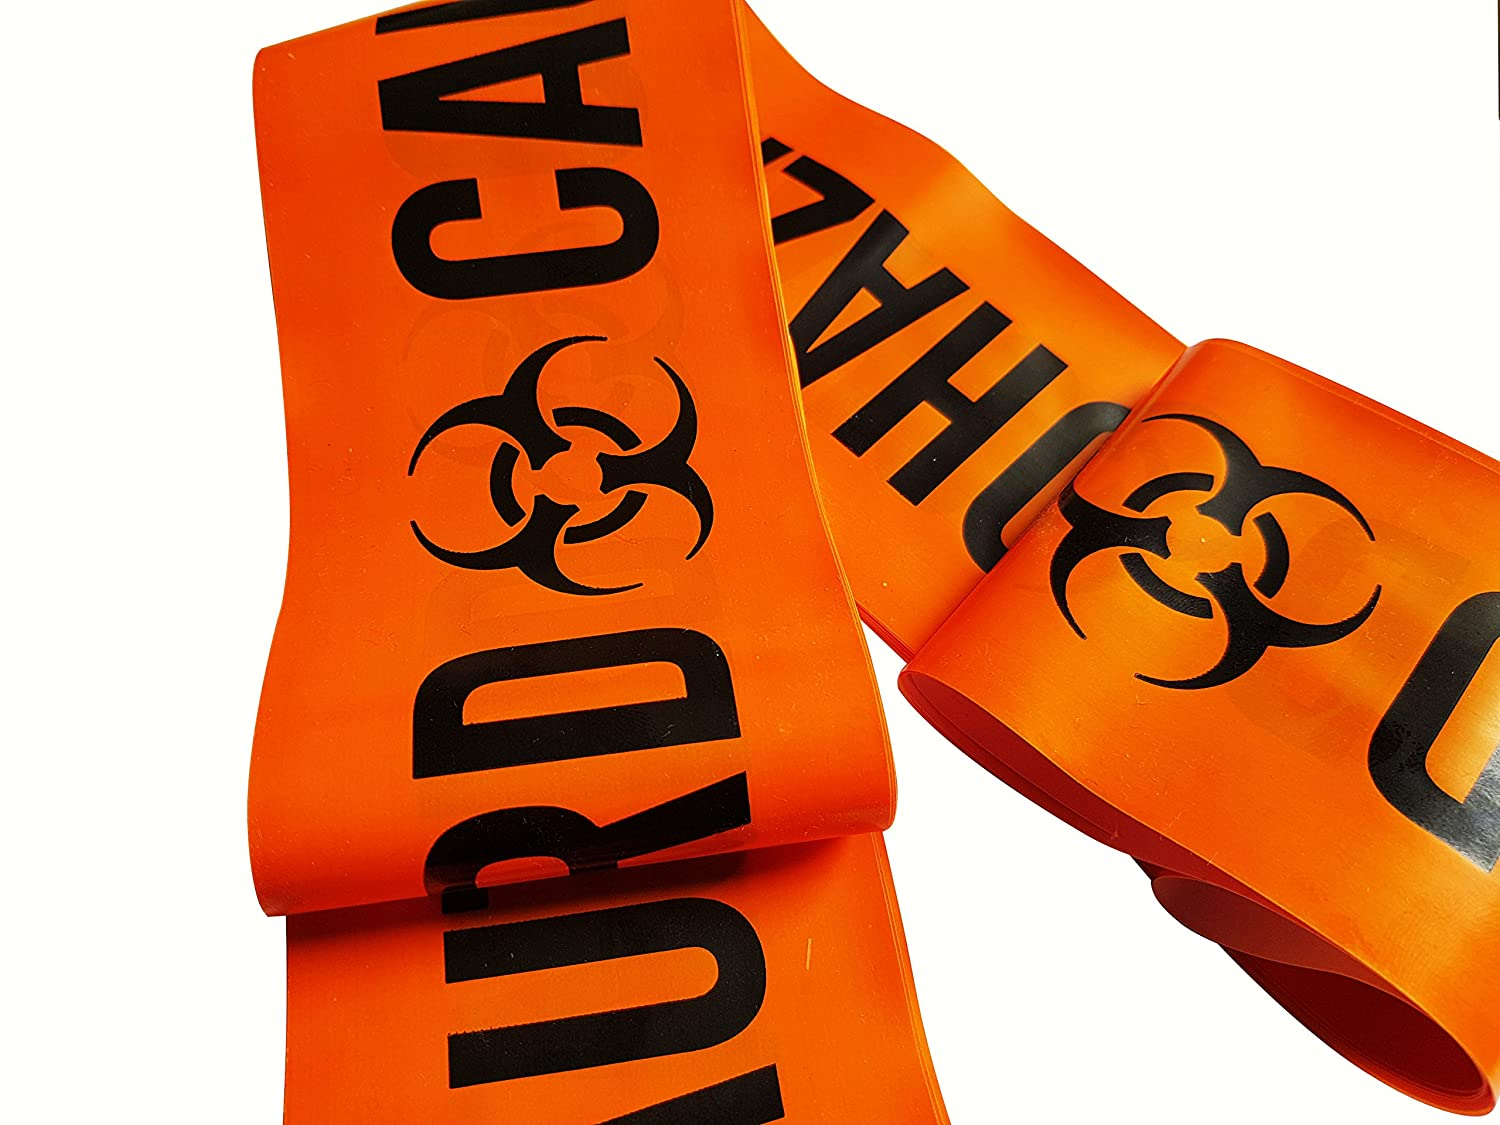 10m Length Caution Biohazard Novelty Barrier Tape